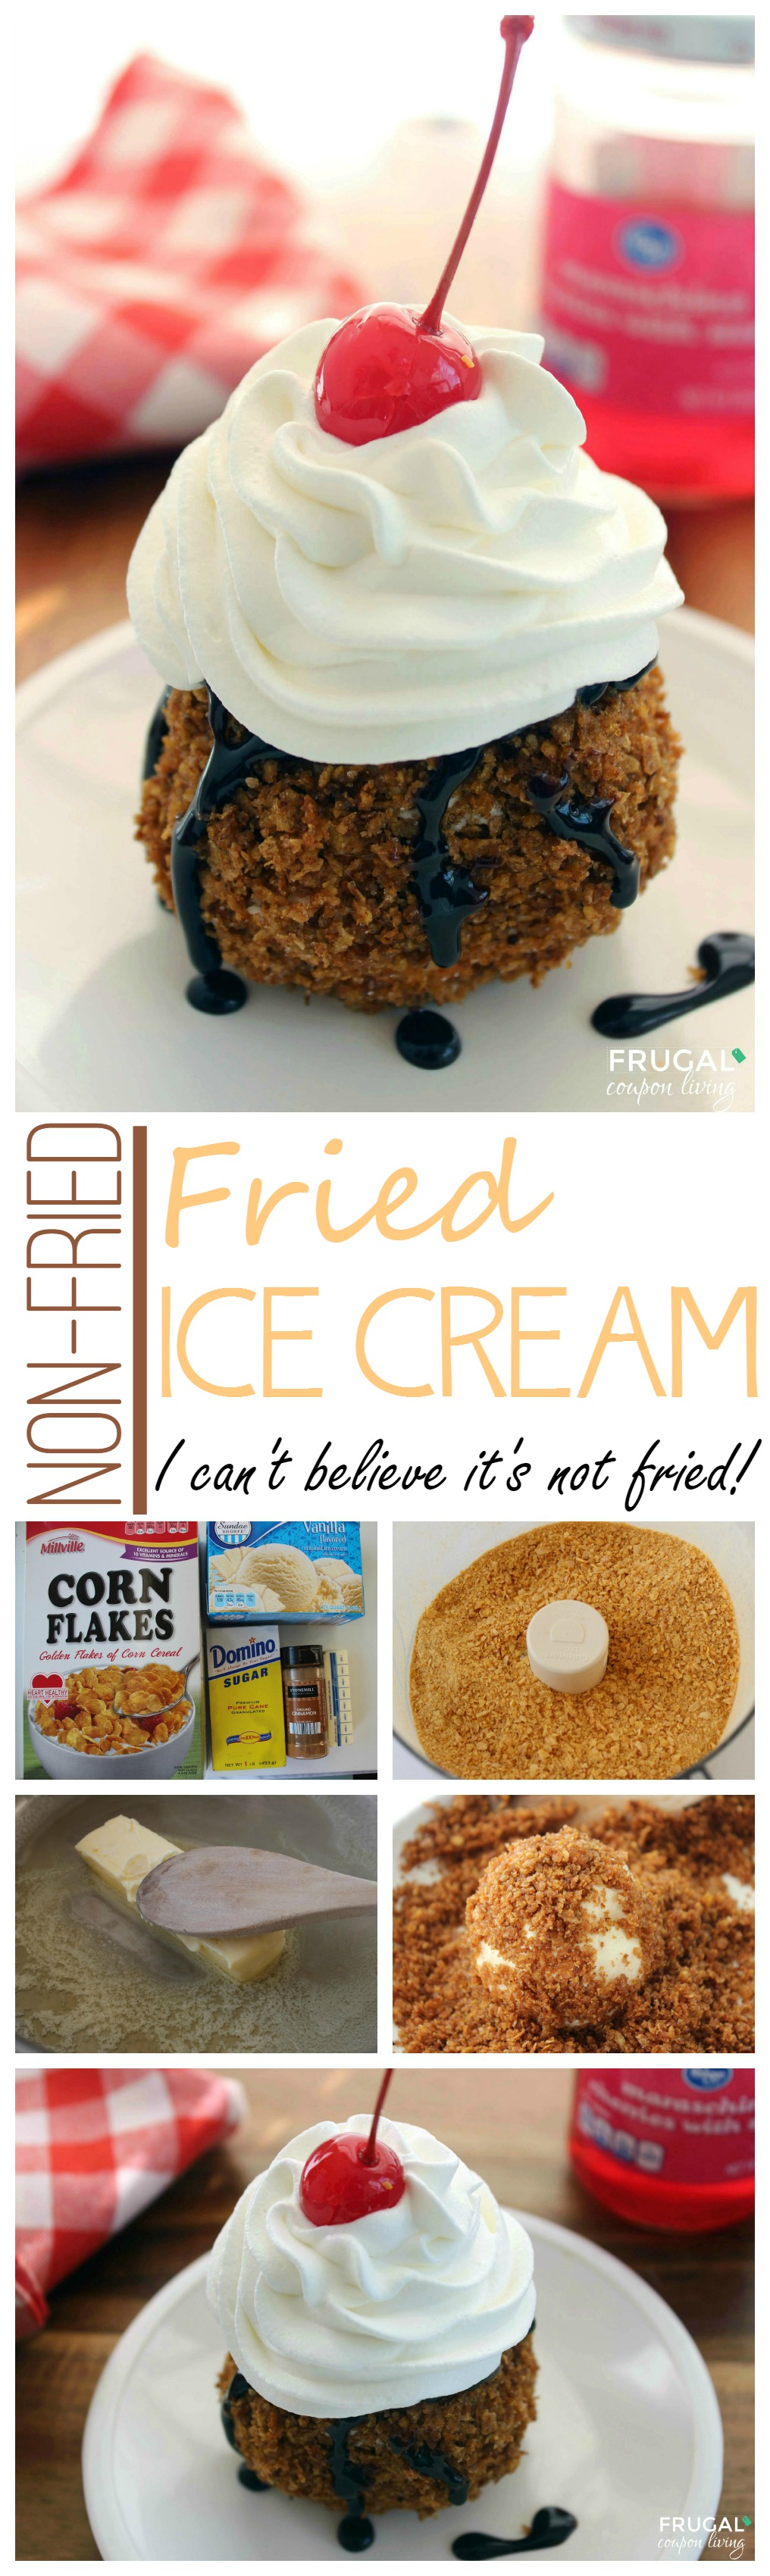 fried-ice-cream-Collage-frugal-coupon-living